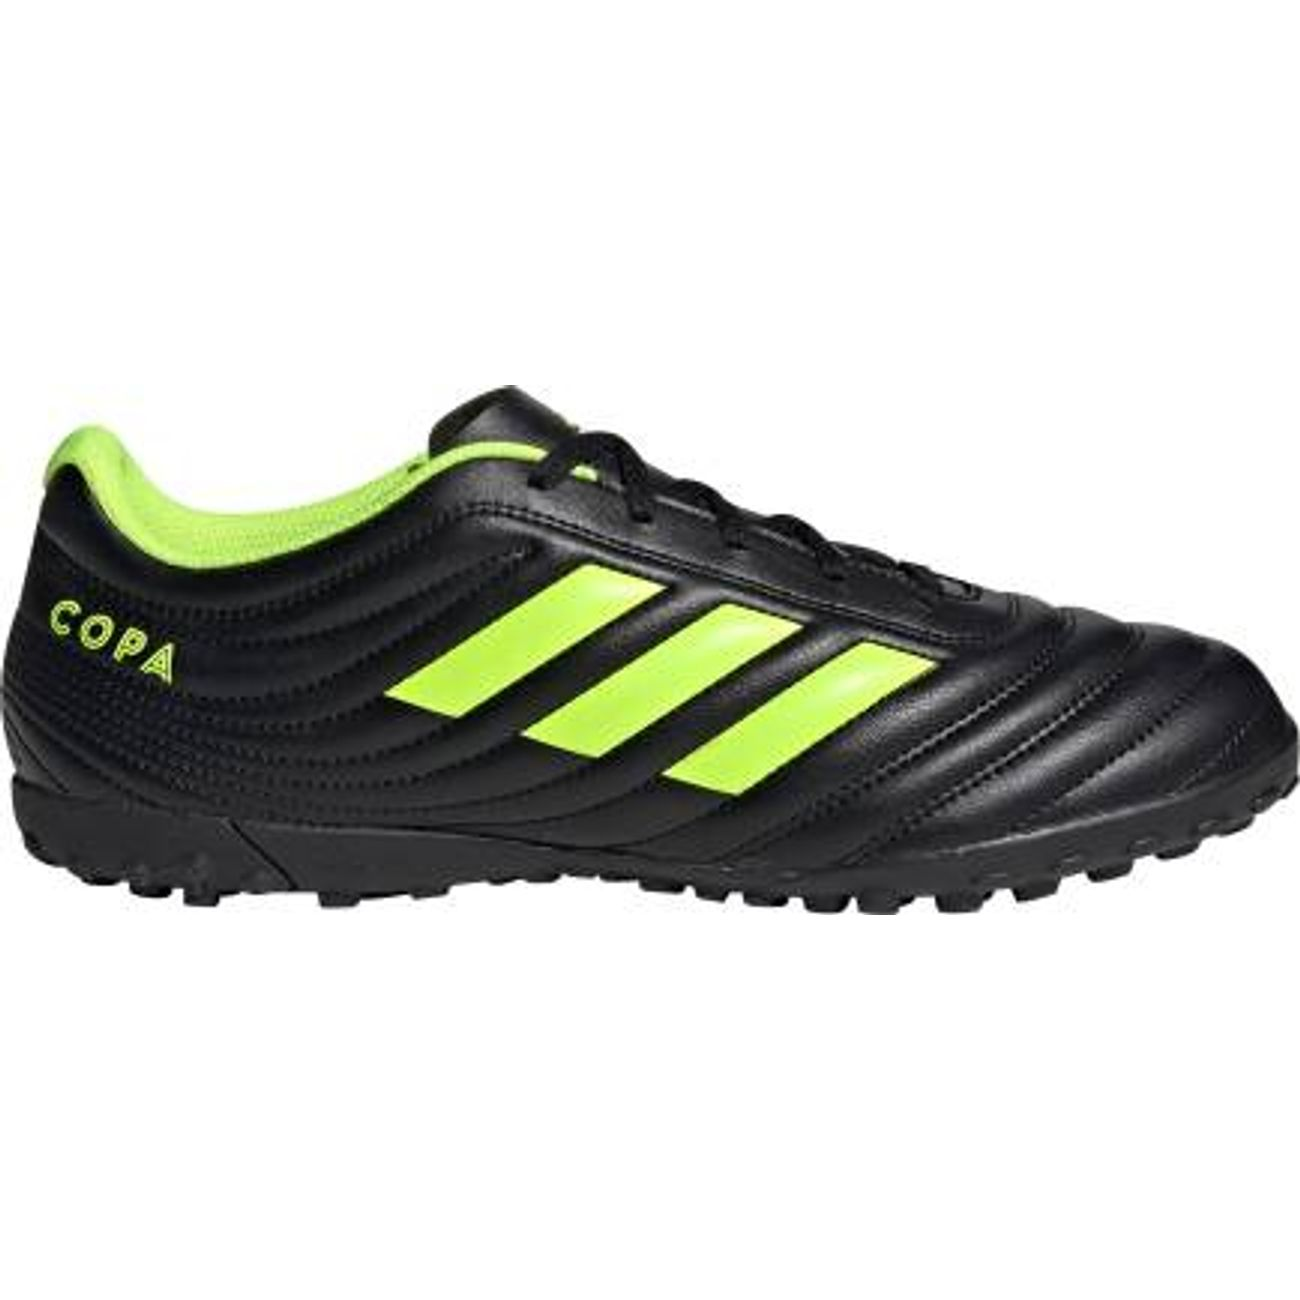 chaussures hommes adidas copa